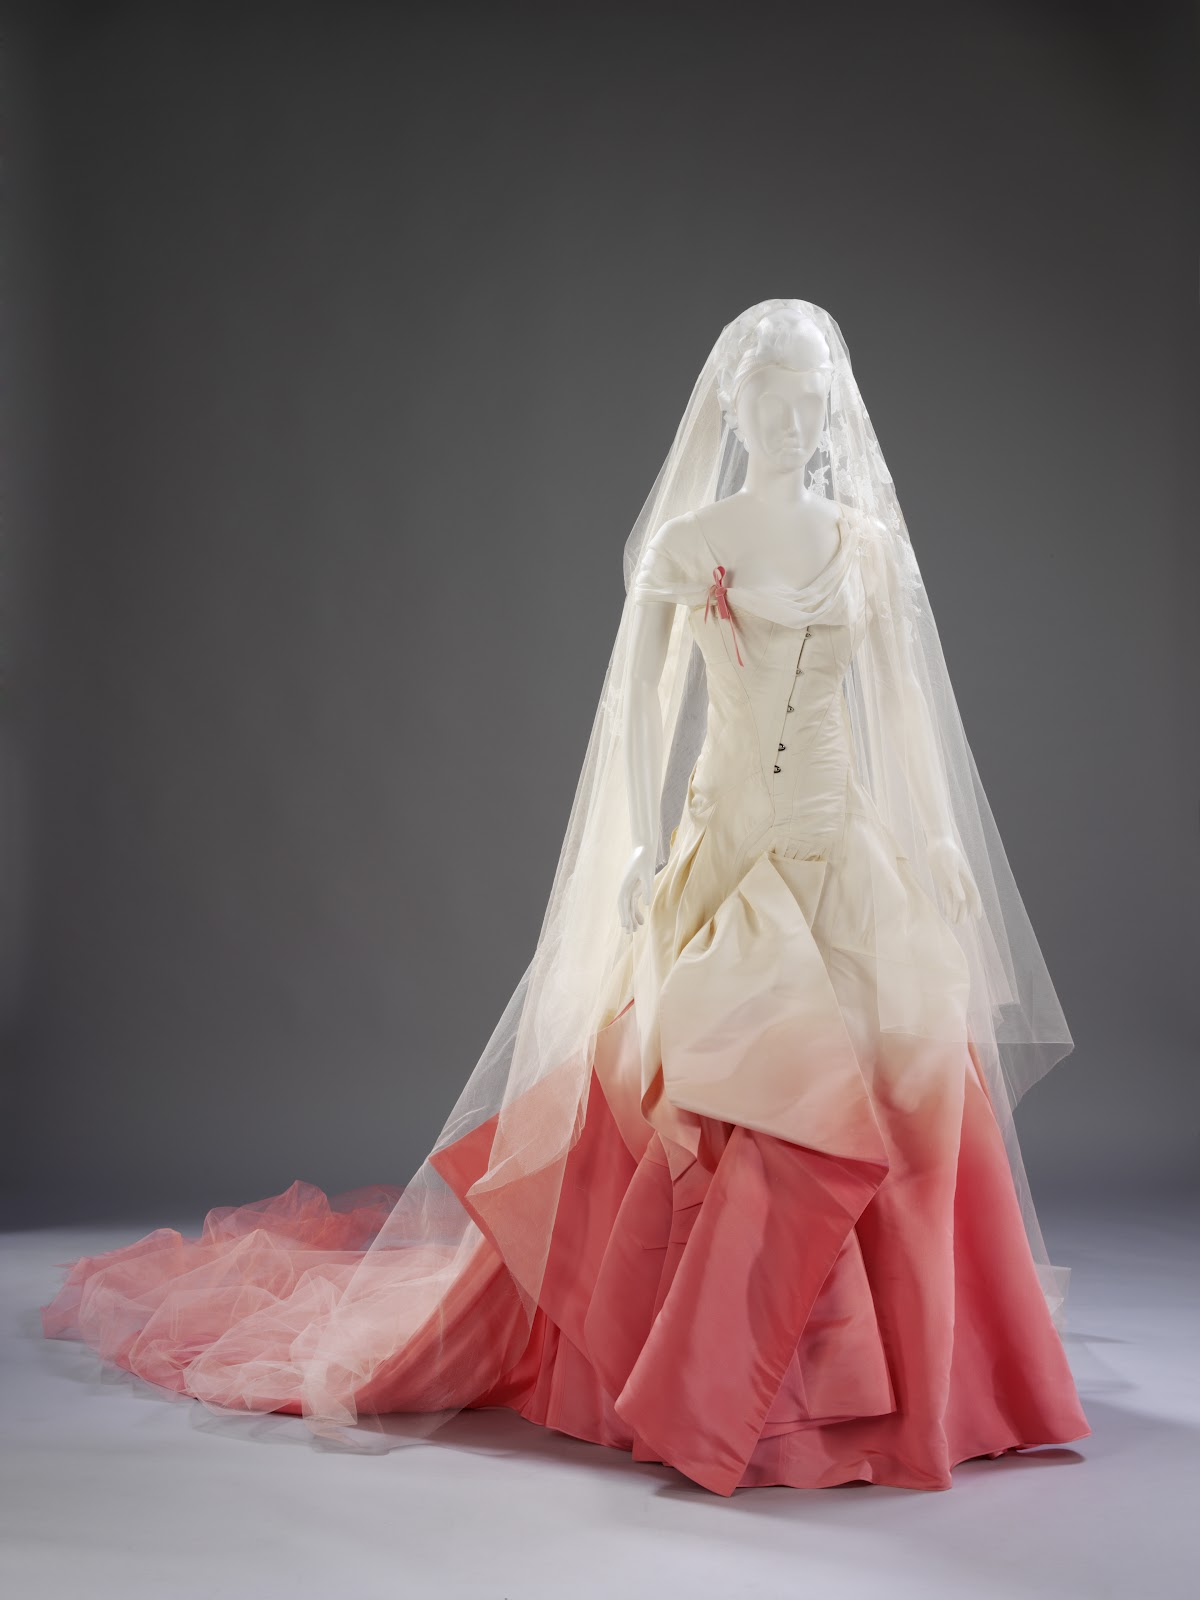 Bewicked art the story behind wedding dresses for John galliano wedding dress